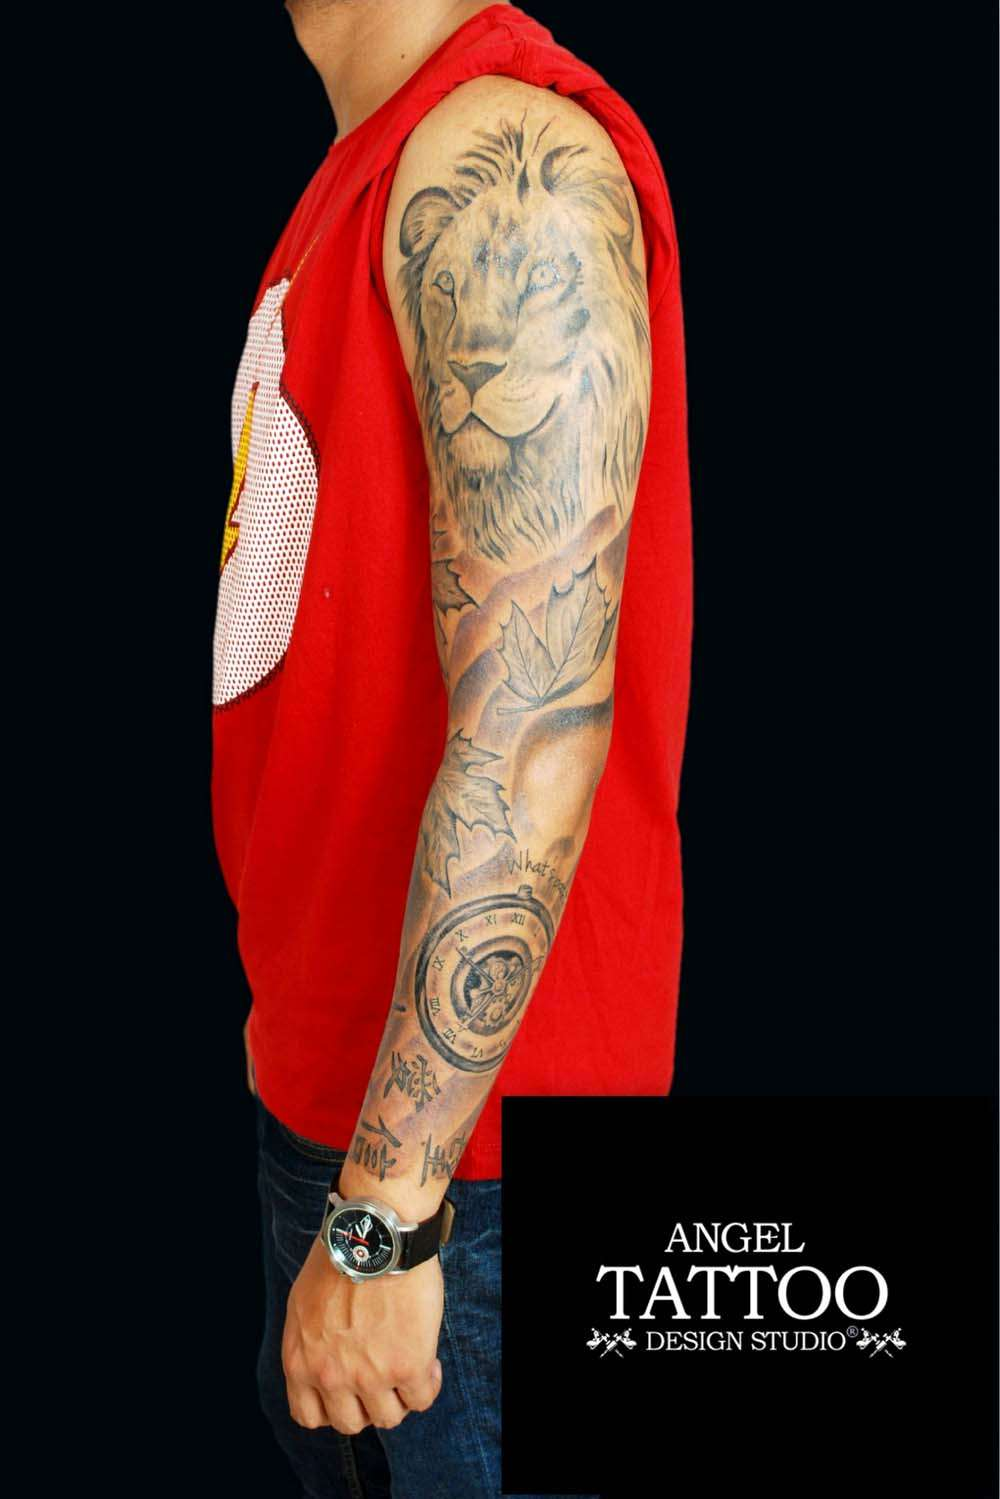 Sleeve Tattoo Image: Tattoos - Full Sleeve Tattoos